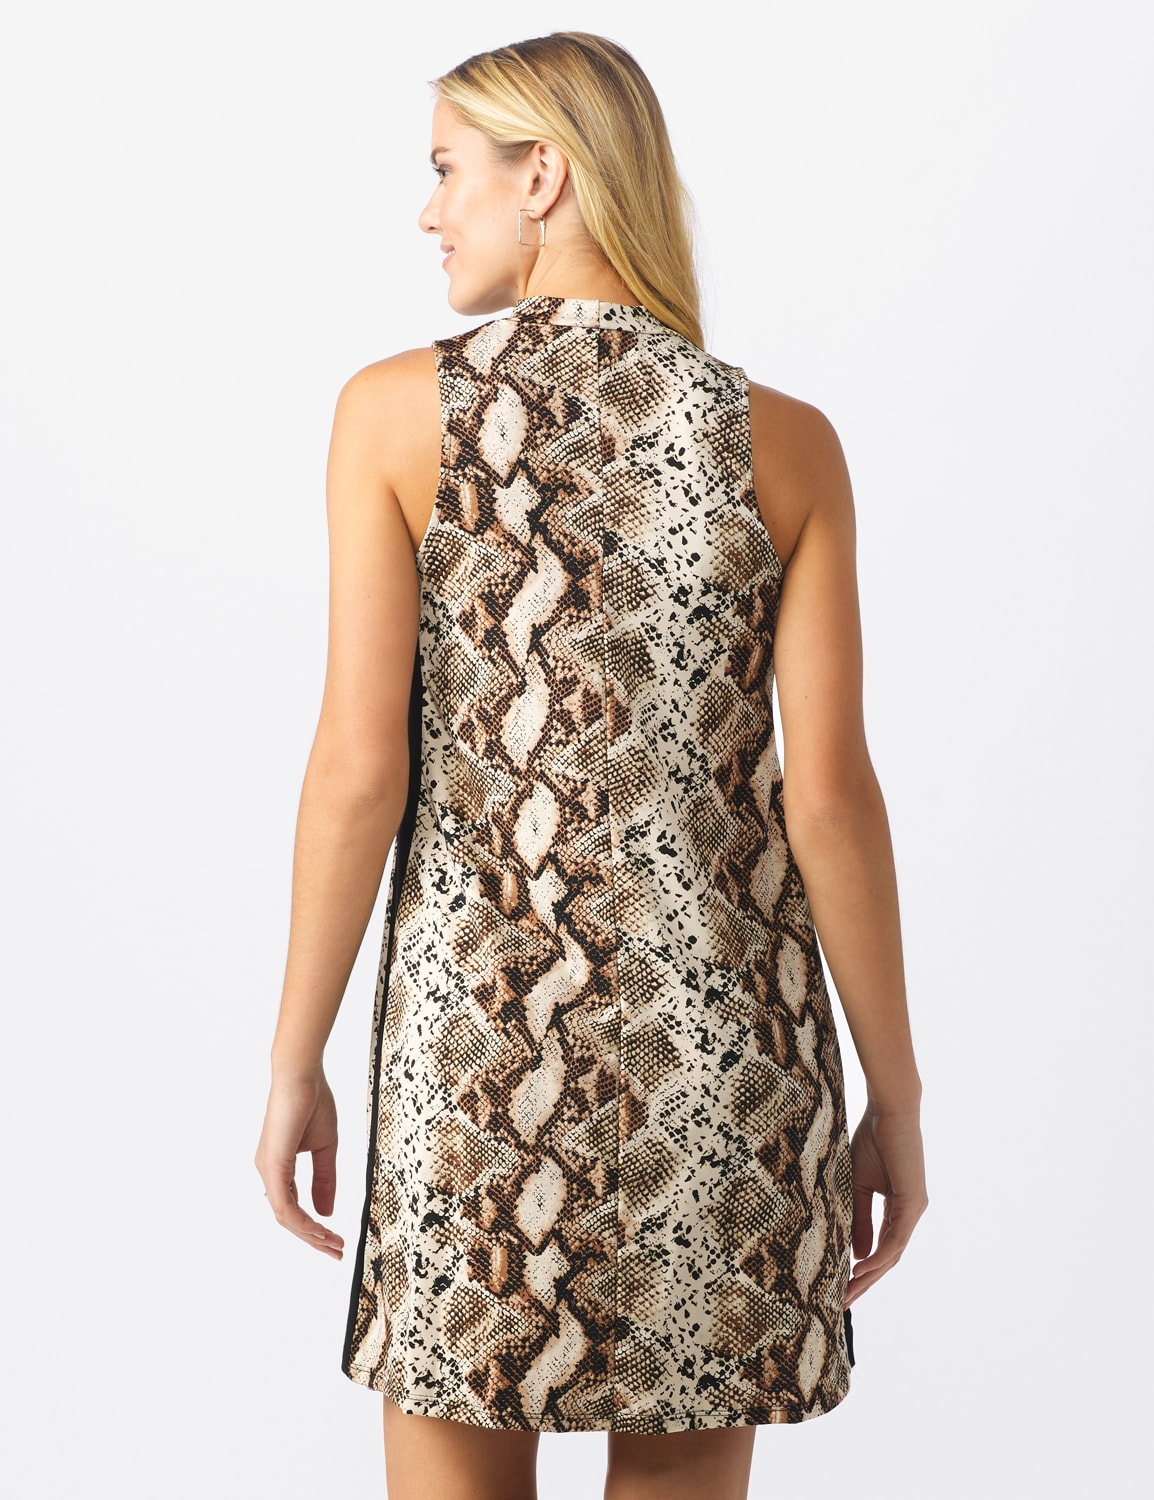 Animal A-Line Dress - Misses - Brown/Multi - Back